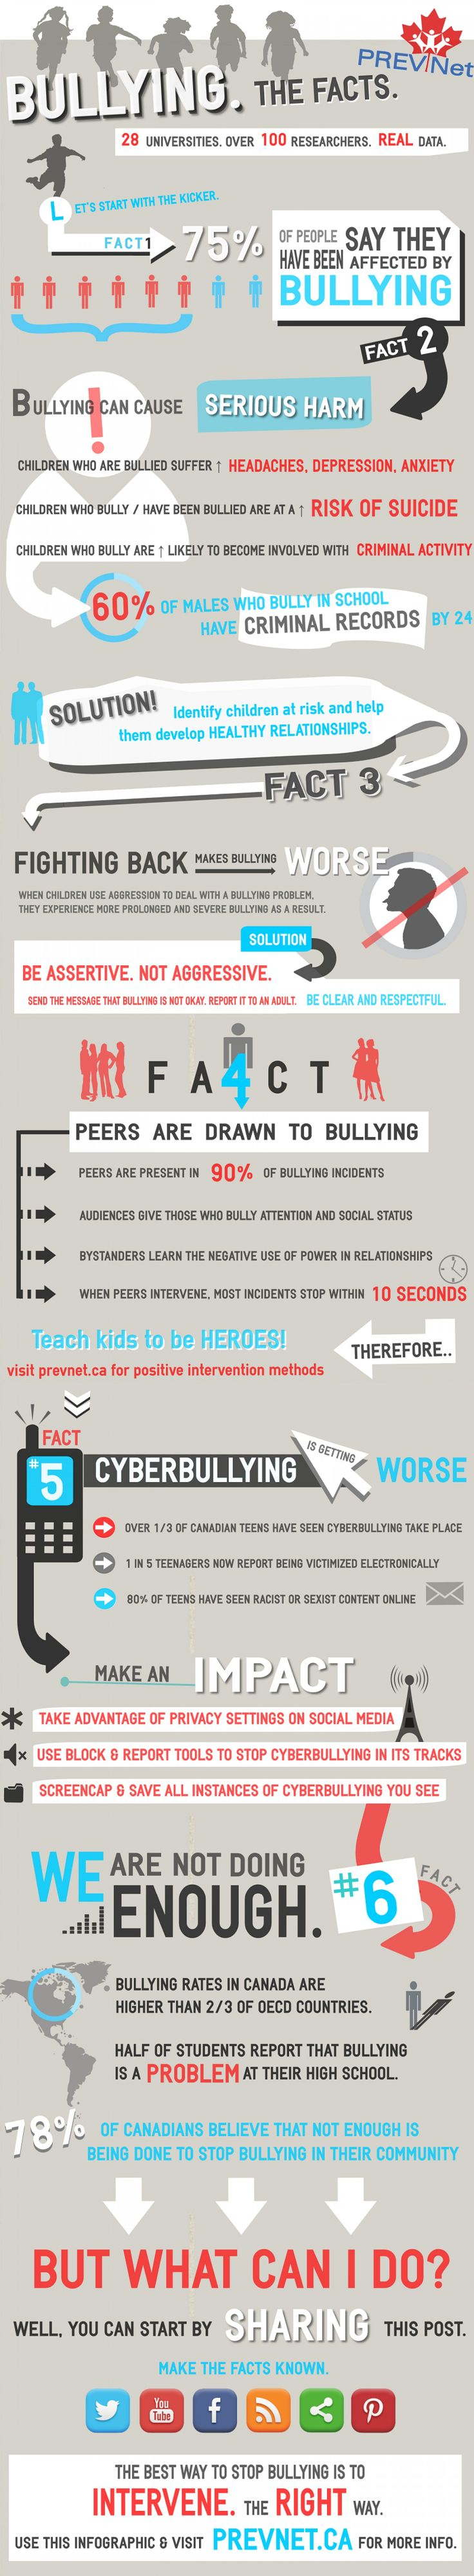 Bullying: The Facts --shared by PREVNet on Jul 04, 2014 - See more at: http://visual.ly/bullying-facts#sthash.aST3nDvY.dpuf